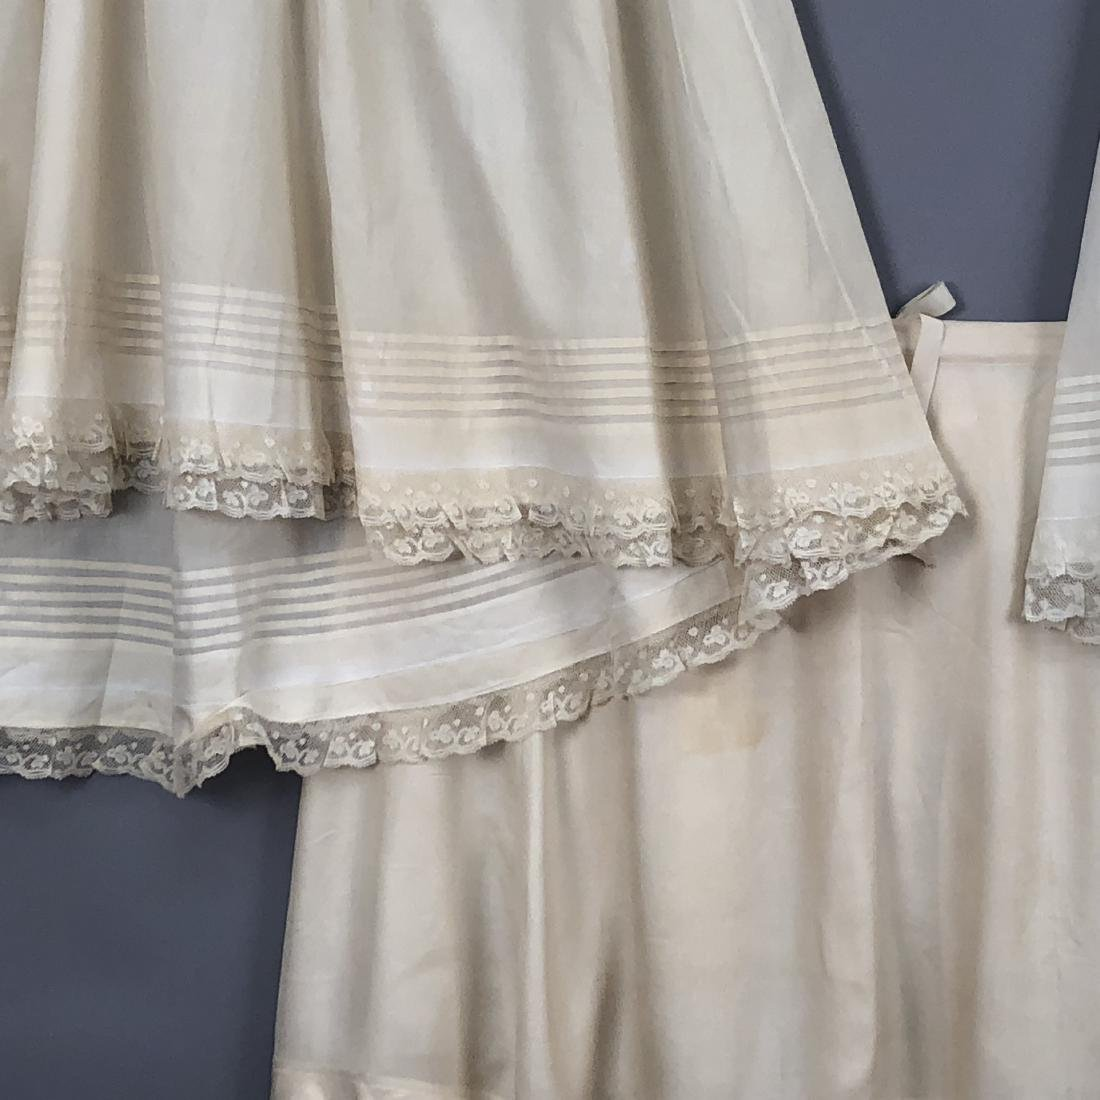 THREE PETTICOATS, QUEEN VICTORIA, 1880s - 1890s - 5